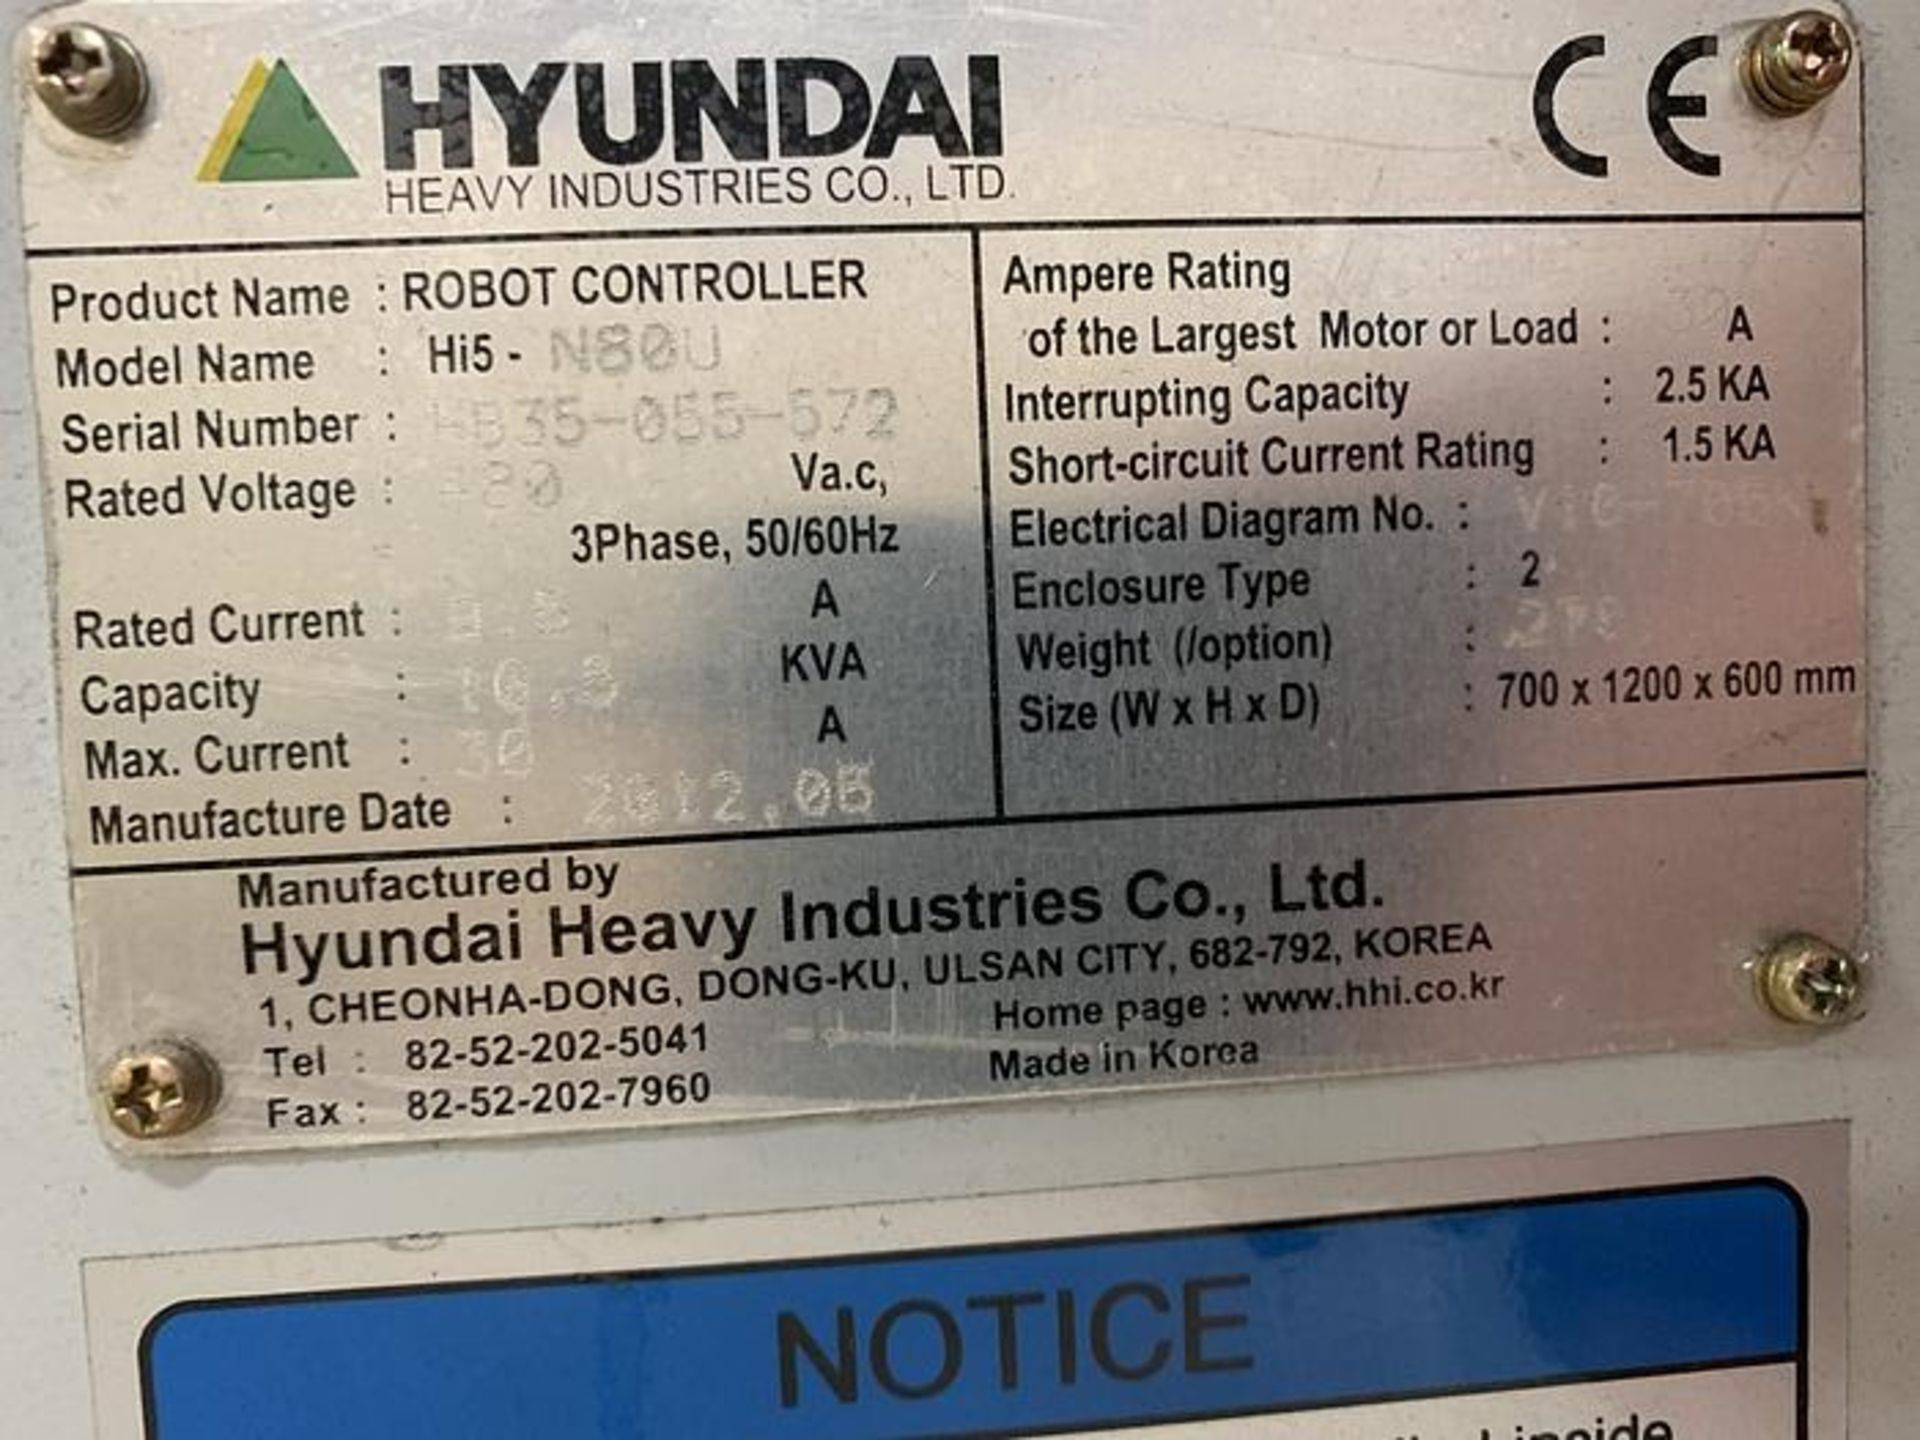 HYUNDIA MODEL HX400 400KG X 2573MM H REACH WITH Hi5-N80U CONTROLLER 6 AXIS CNC ROBOT, YEAR 2012 - Image 16 of 19